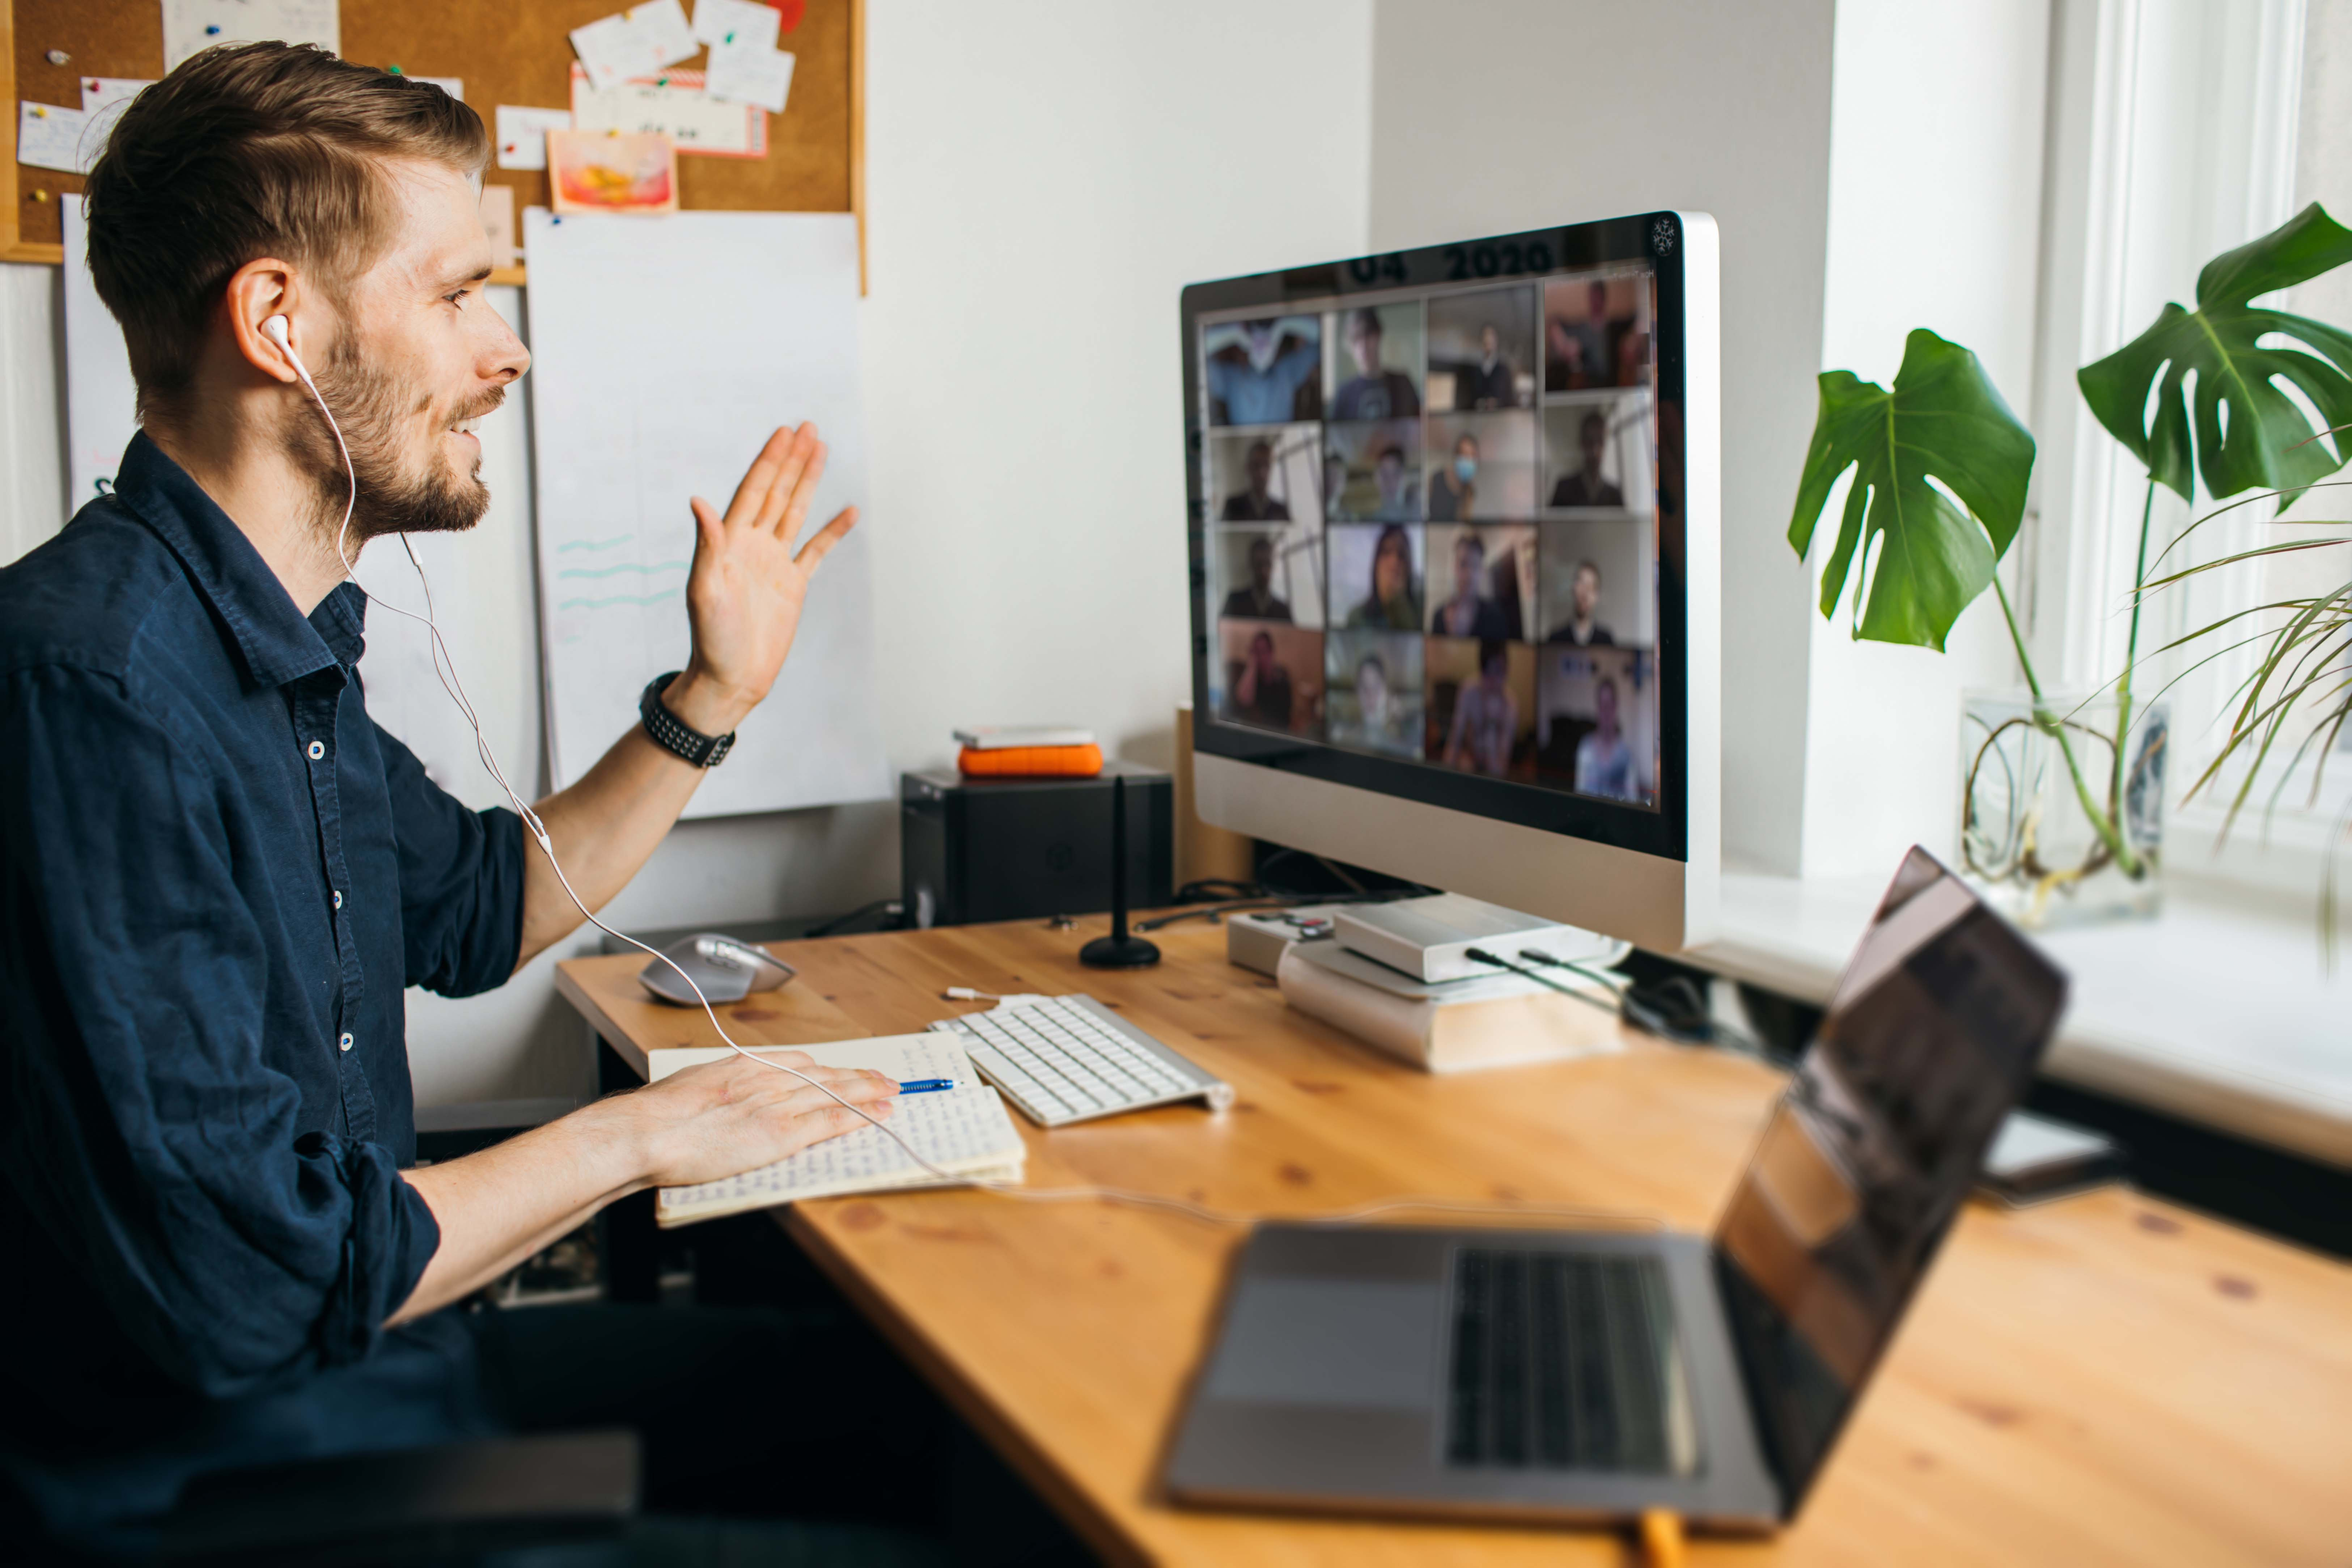 Man in a home office waves at co-workers on a video call.